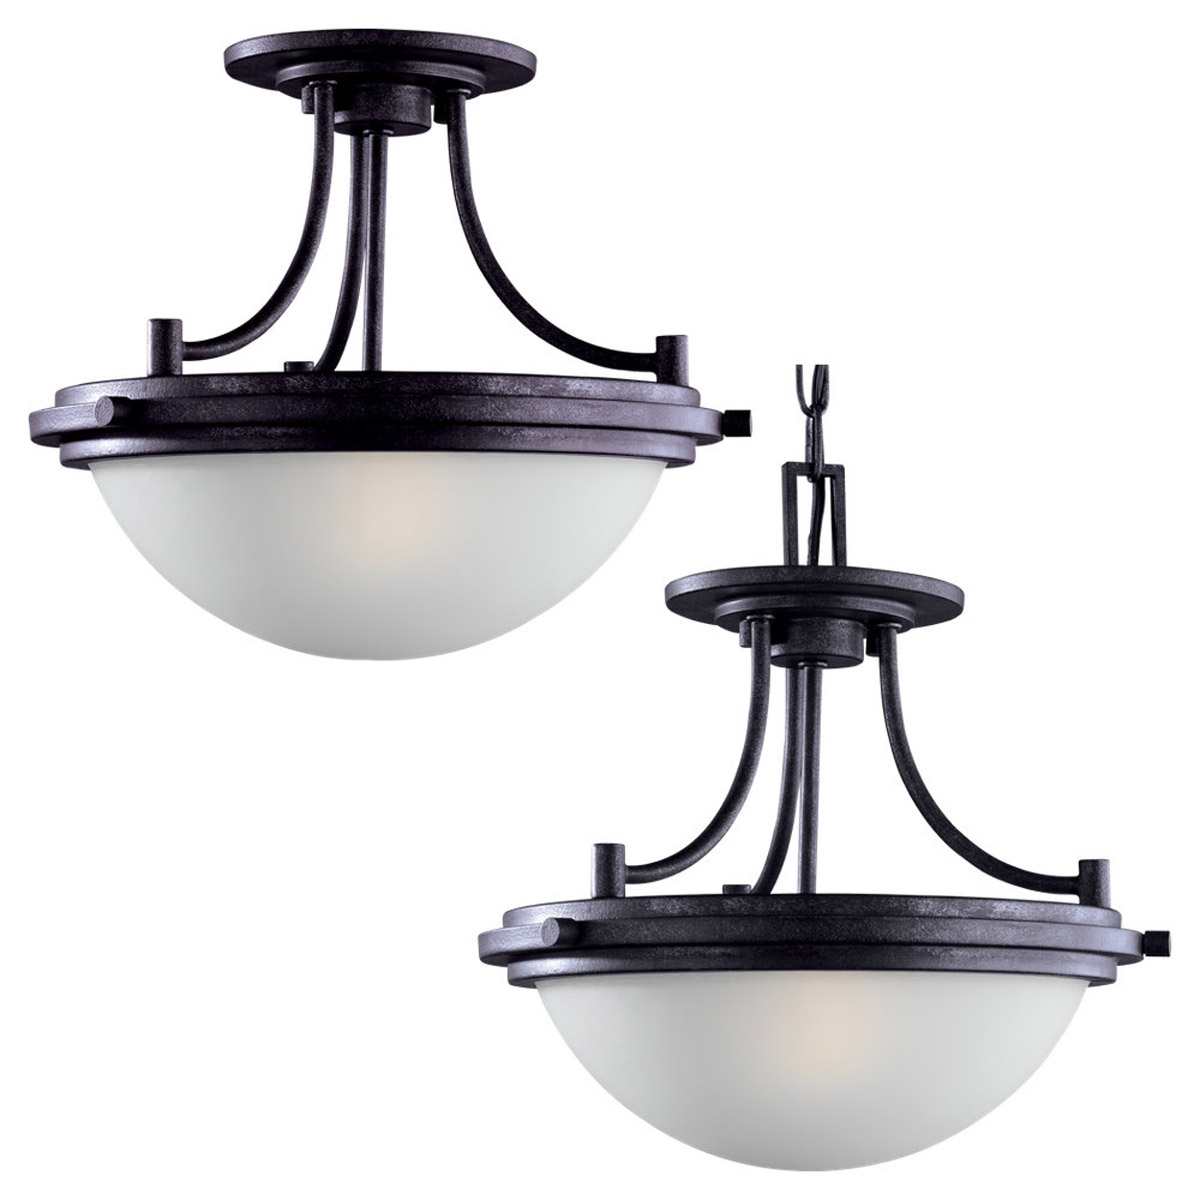 Sea Gull Lighting Winnetka 2 Light Pendant Convertible in Blacksmith 77660-839